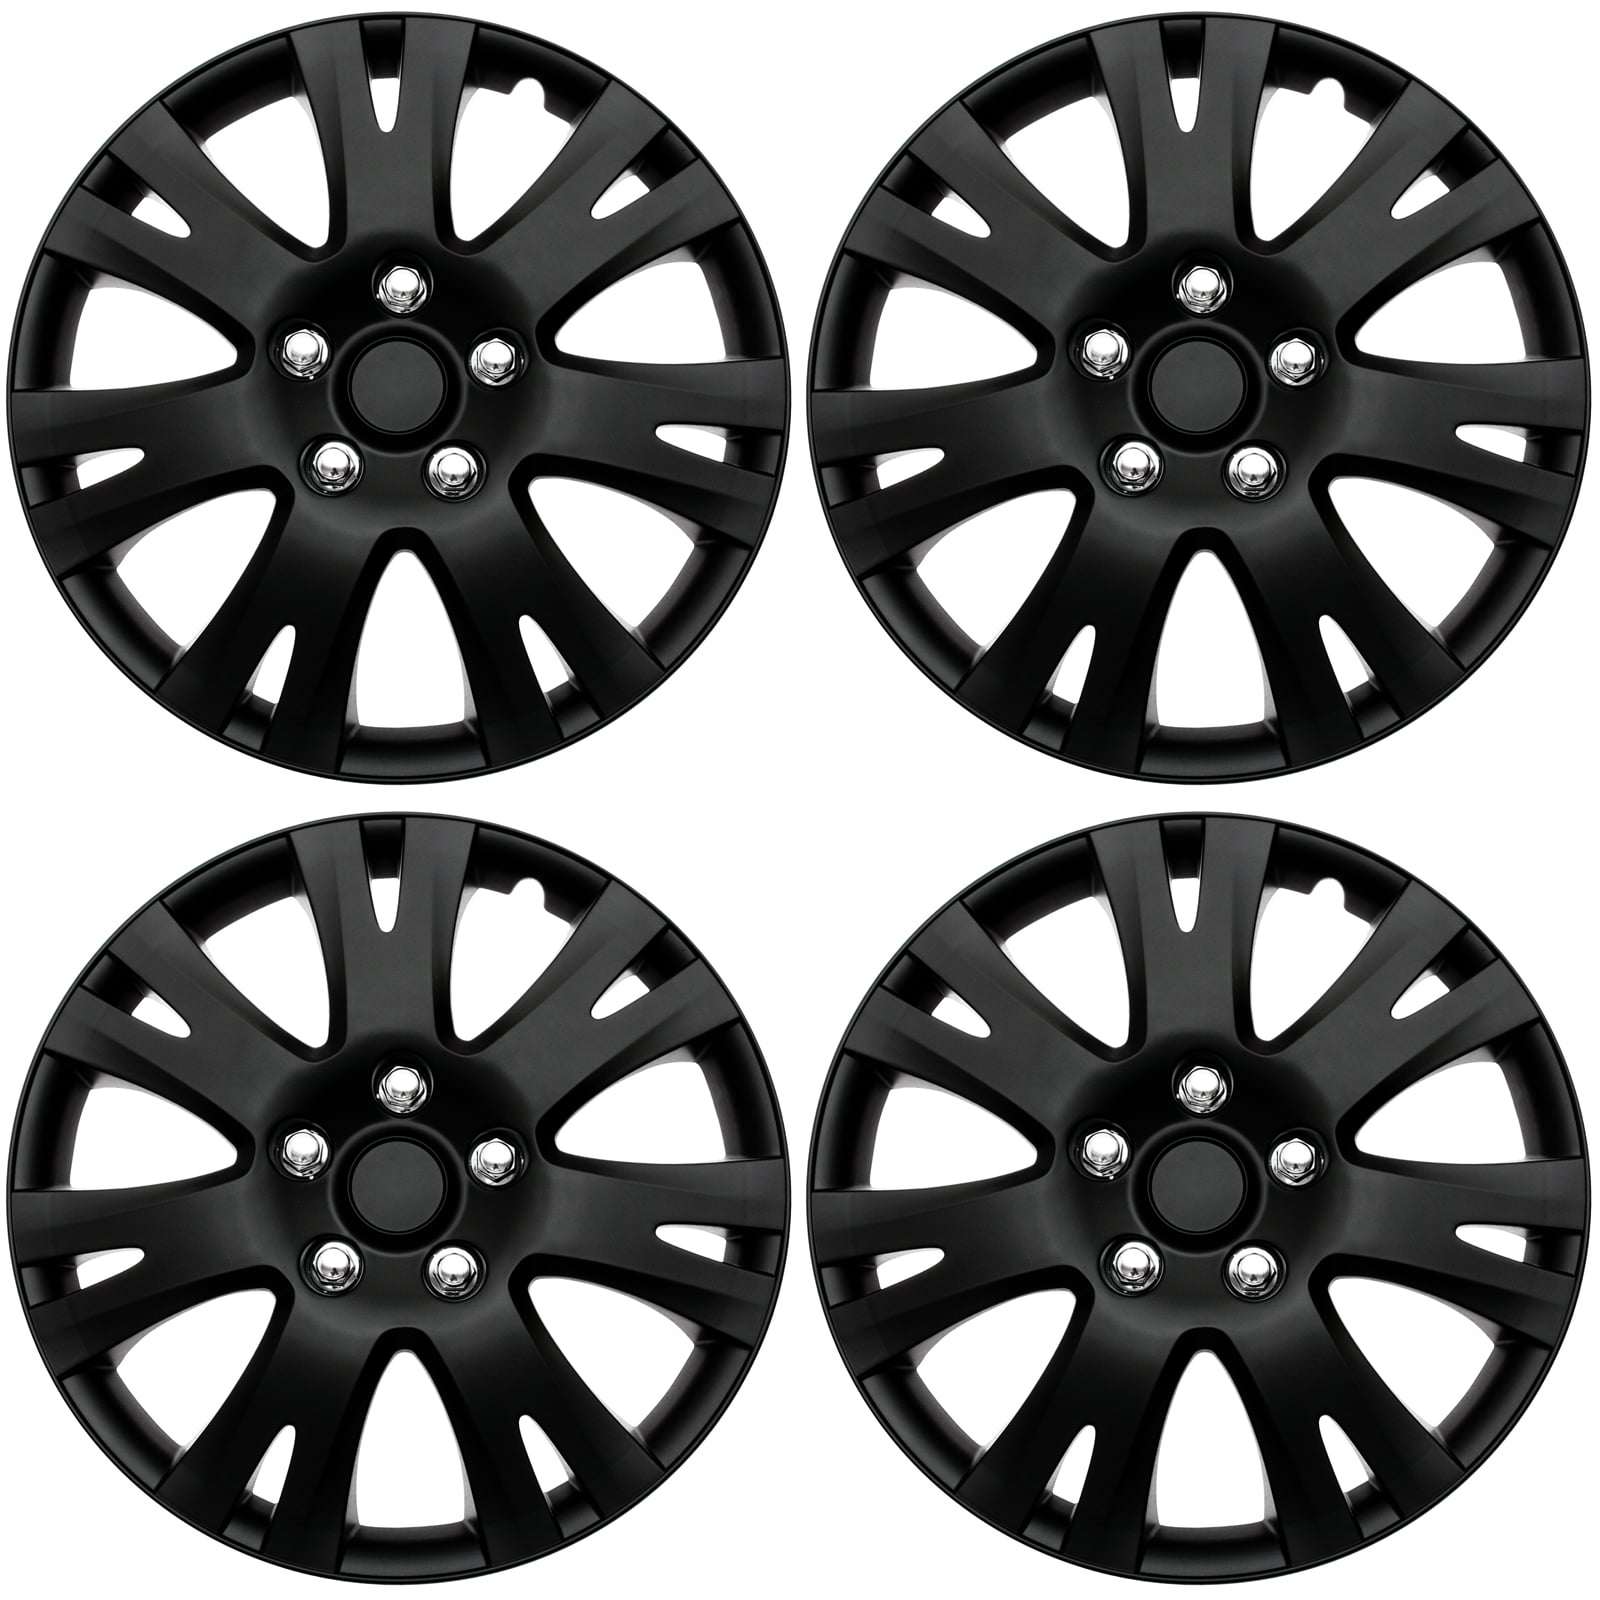 4 Pc Set Hub Cap Abs Black Matte 16 Inch For Oem Steel Wheel Cover